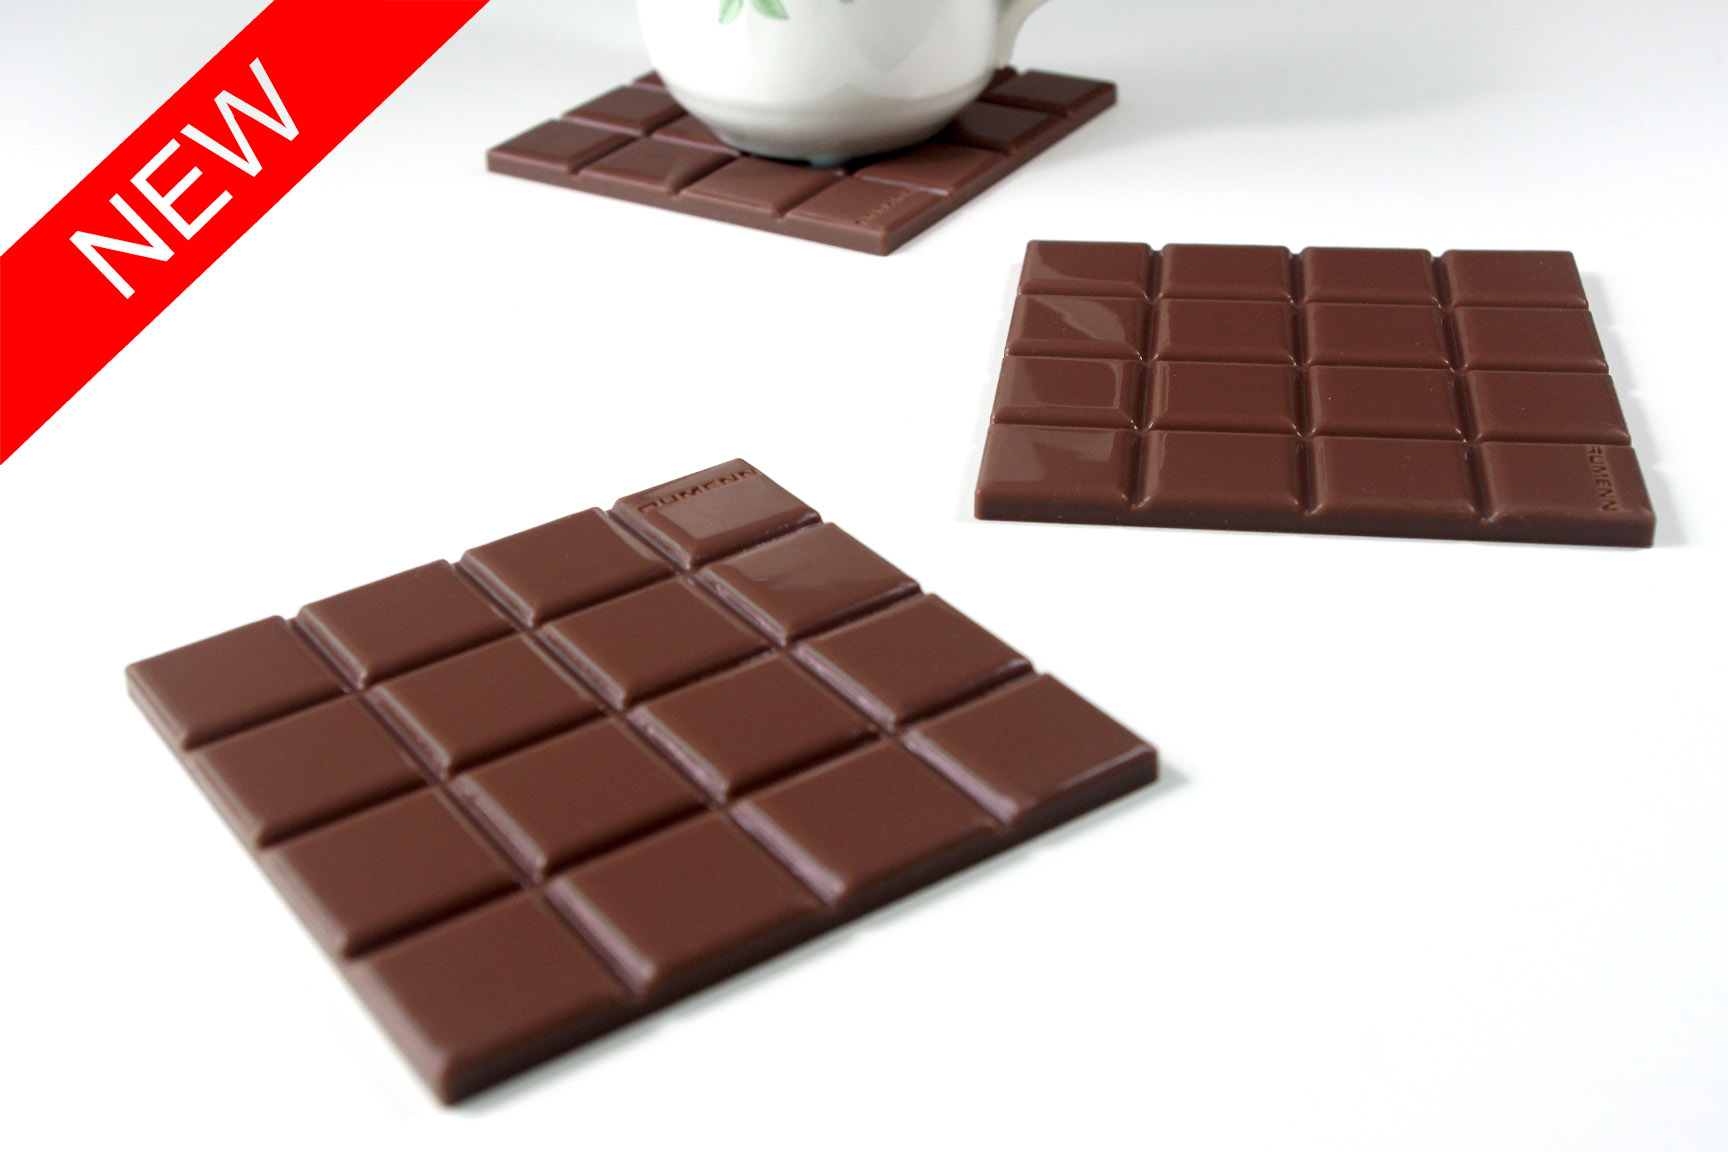 Lifestyle Product Rubber coaster chocolate